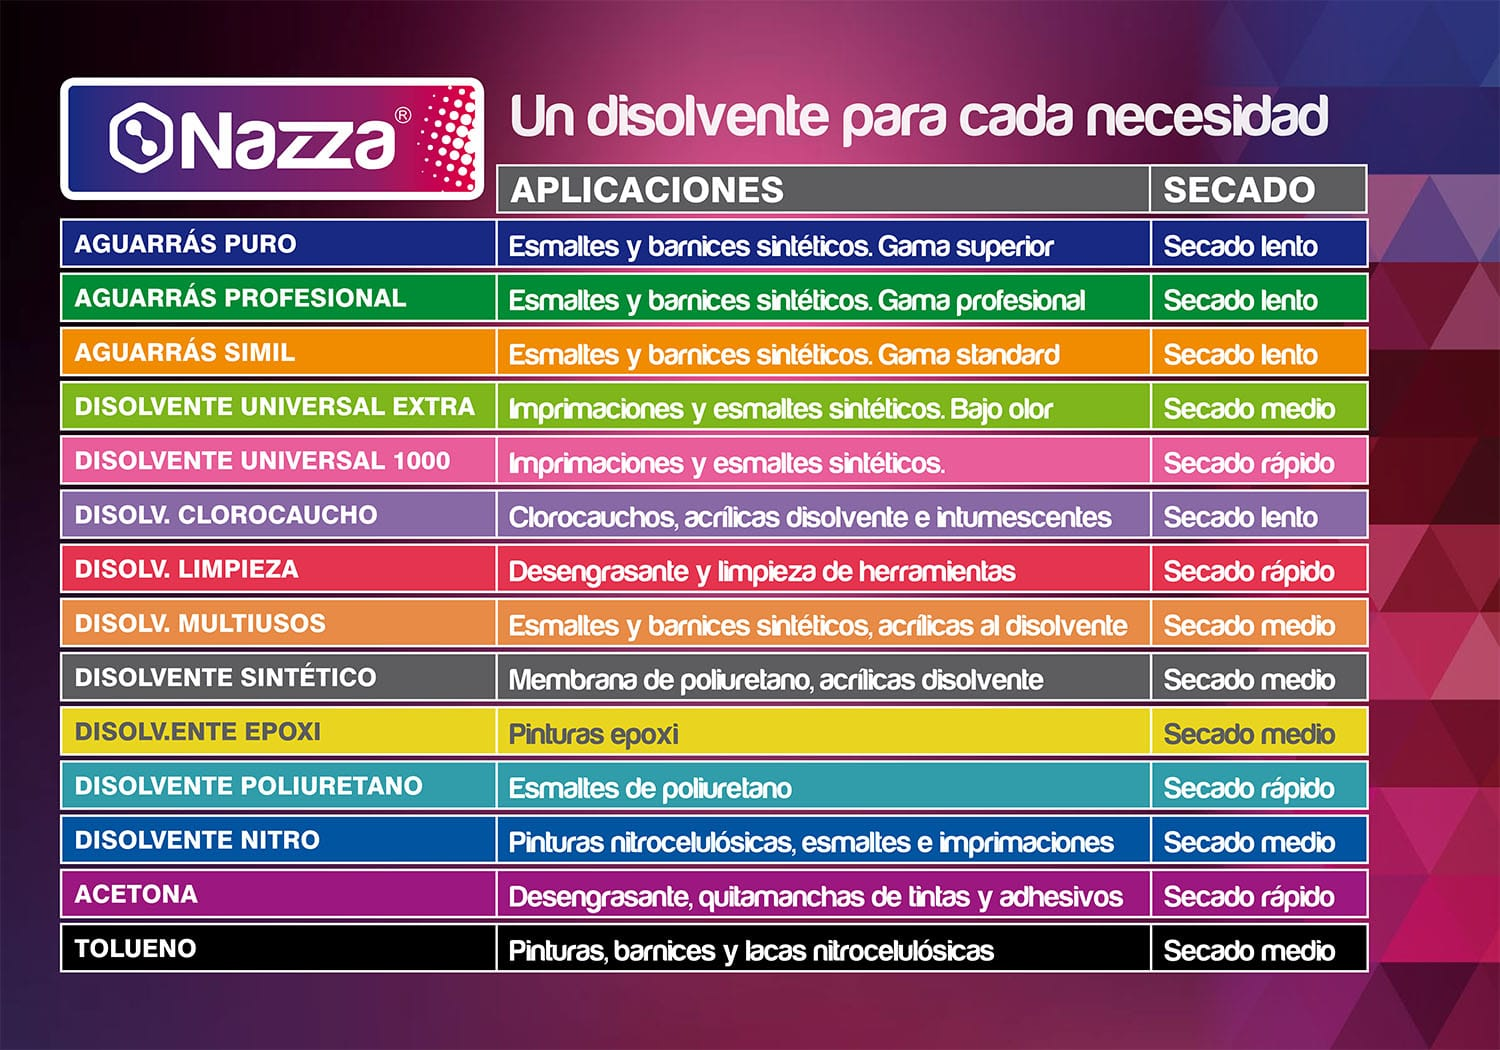 Tabla de Disolventes Nazza